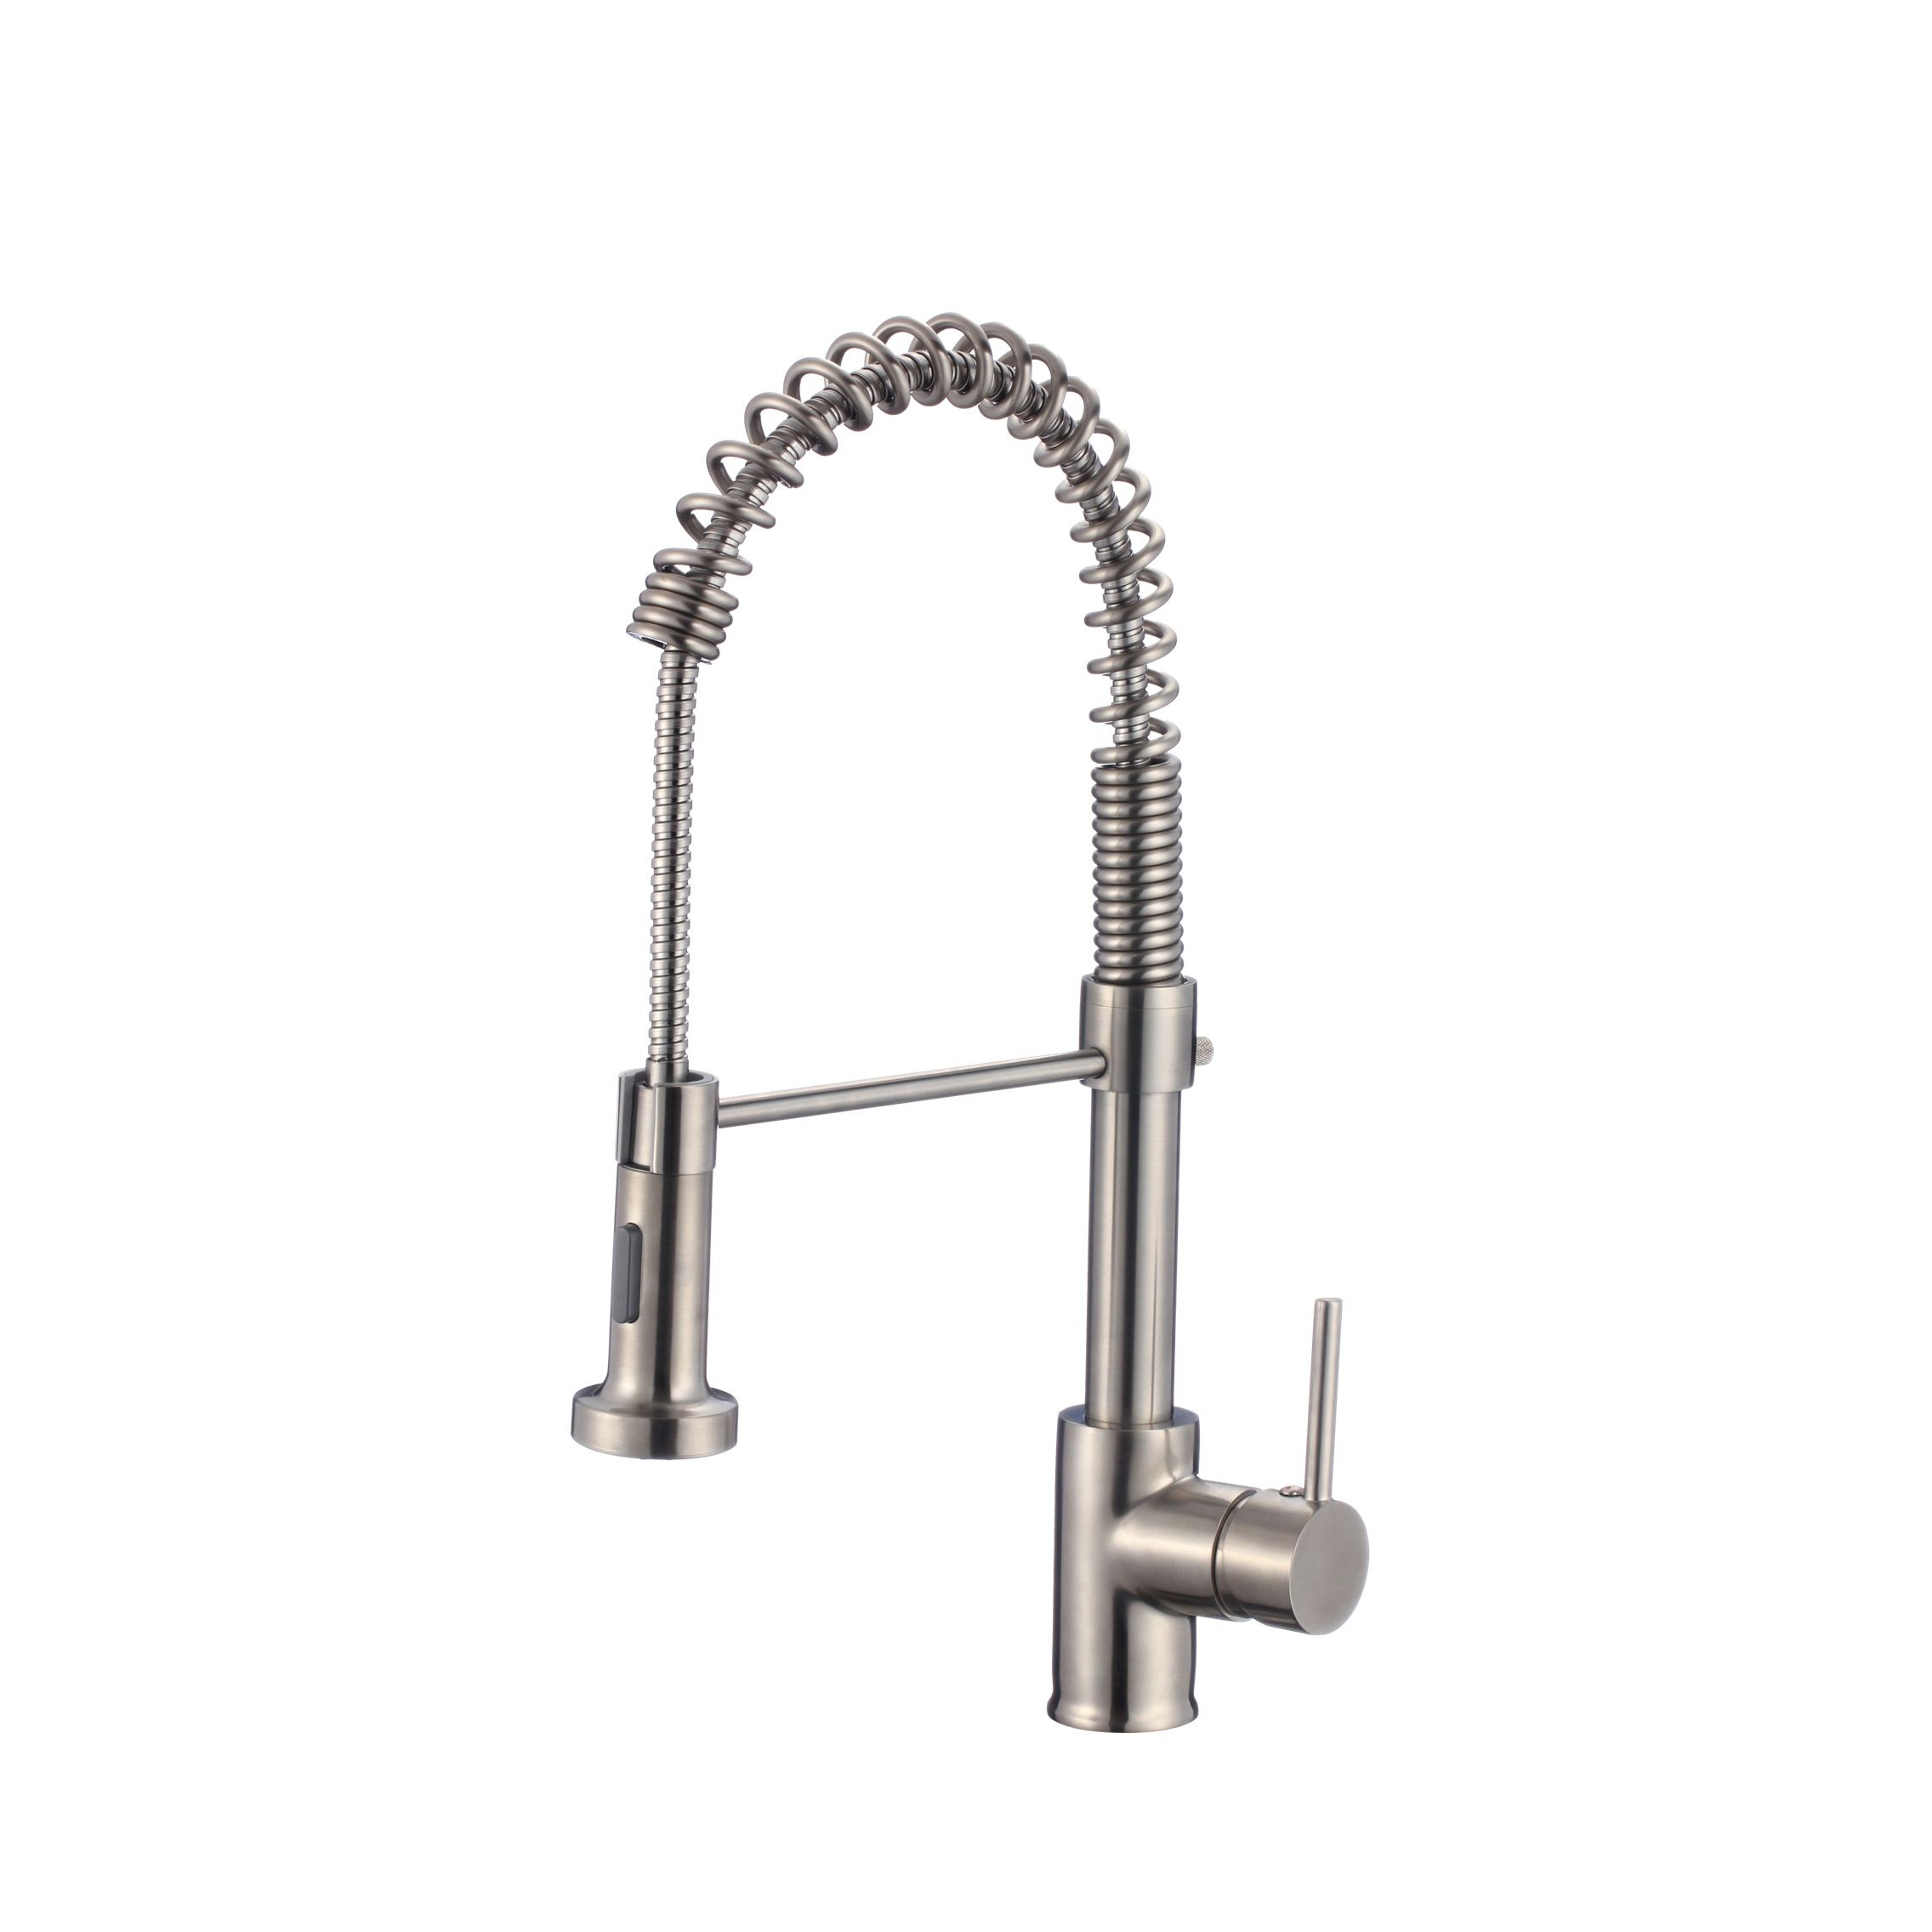 Stylish - Milano K-107B Pull Down Kitchen Faucet in Brushed Nickel